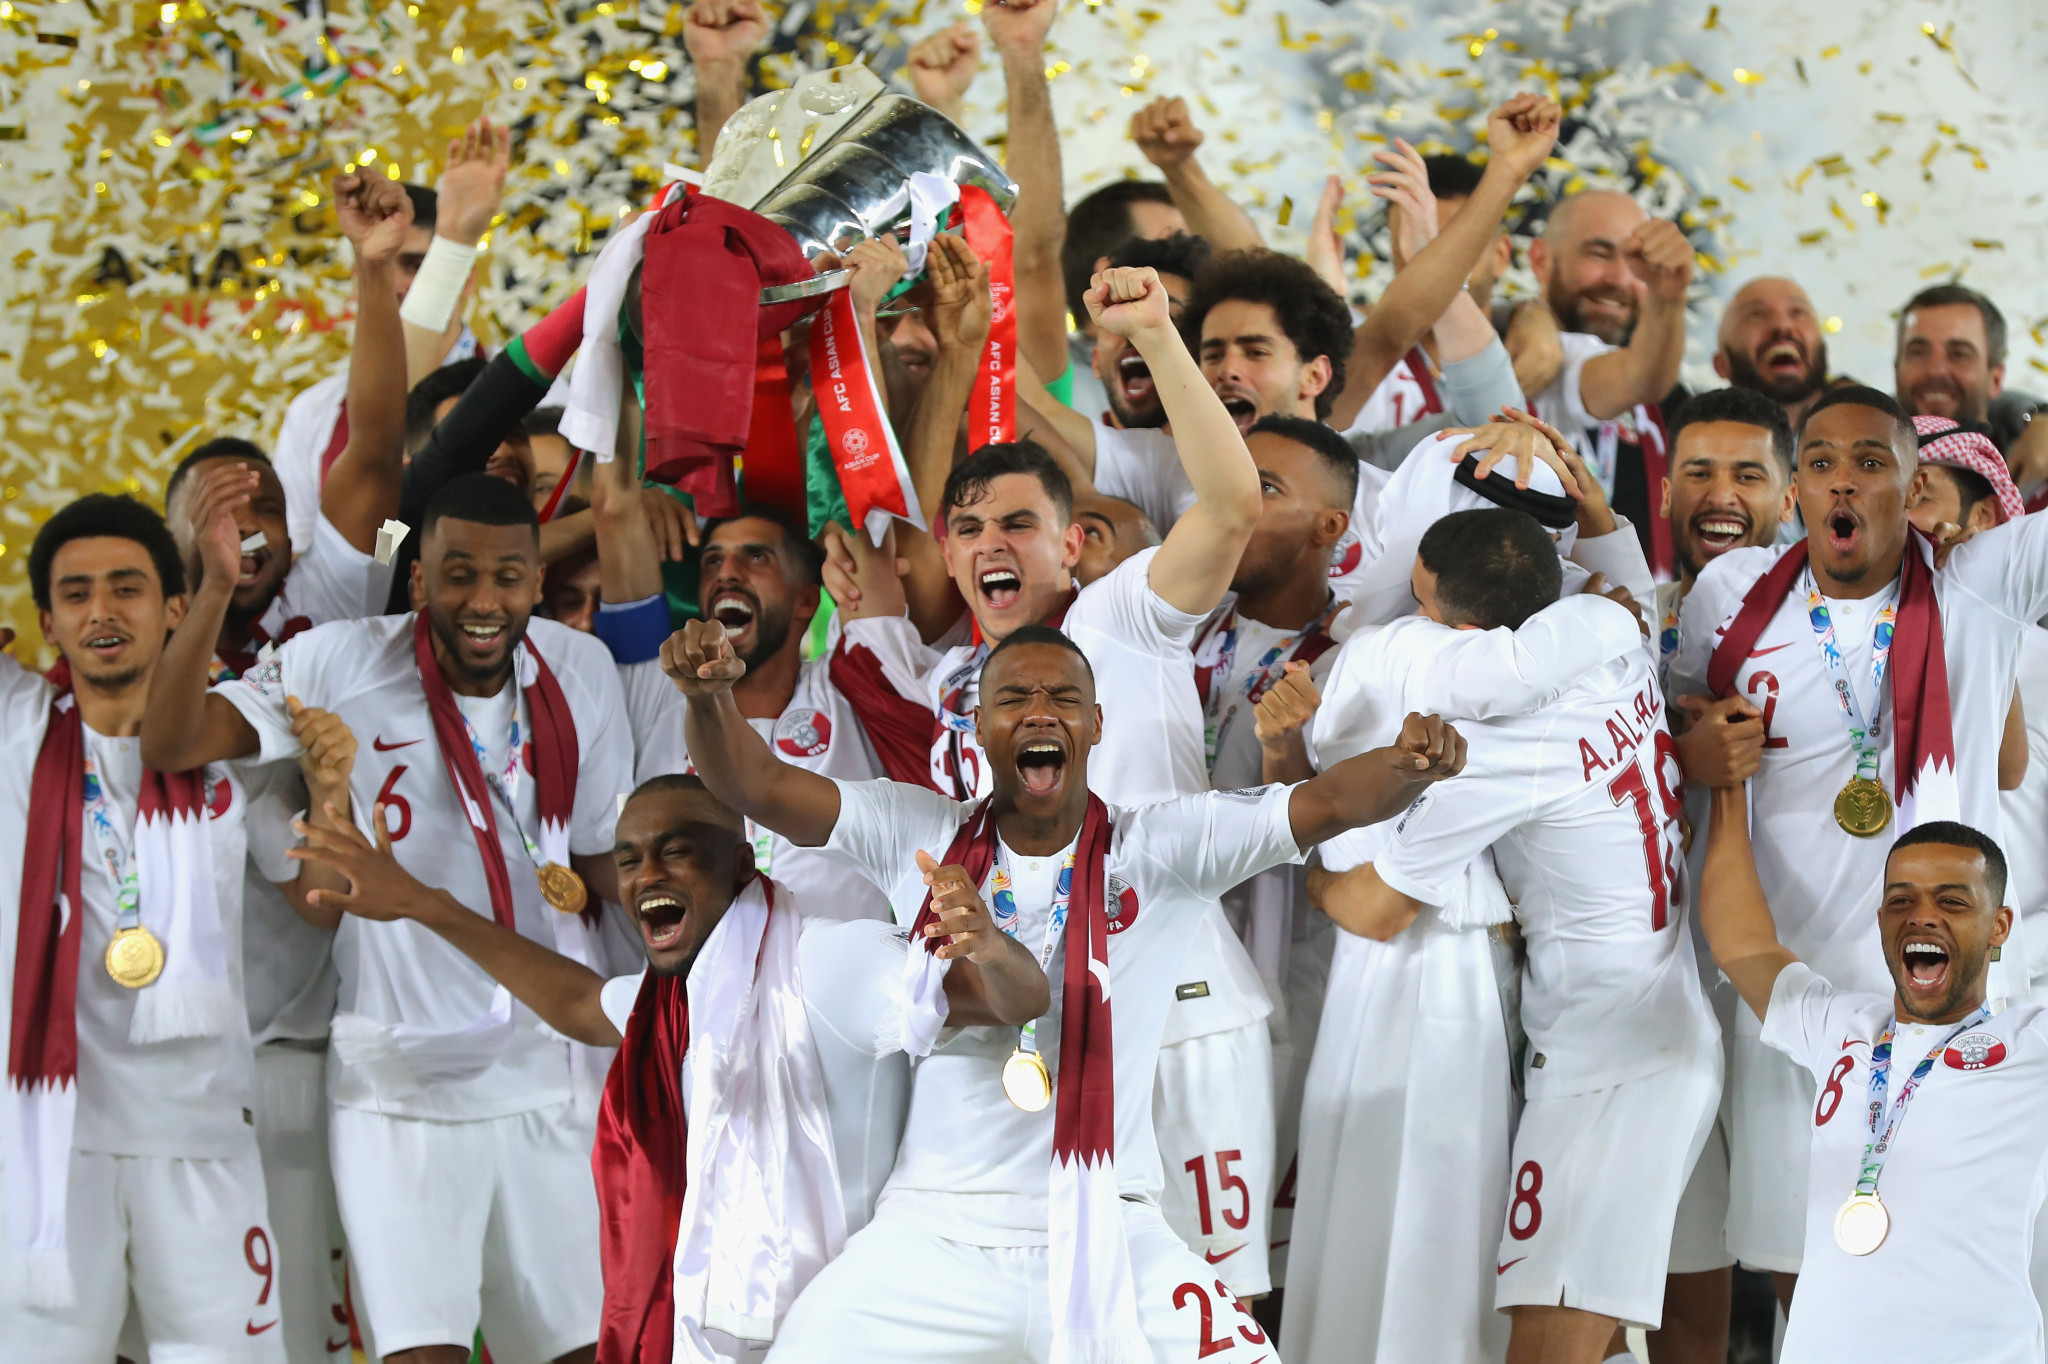 AFC delays selection of 2027 Asian Cup host due to COVID-19 travel restrictions